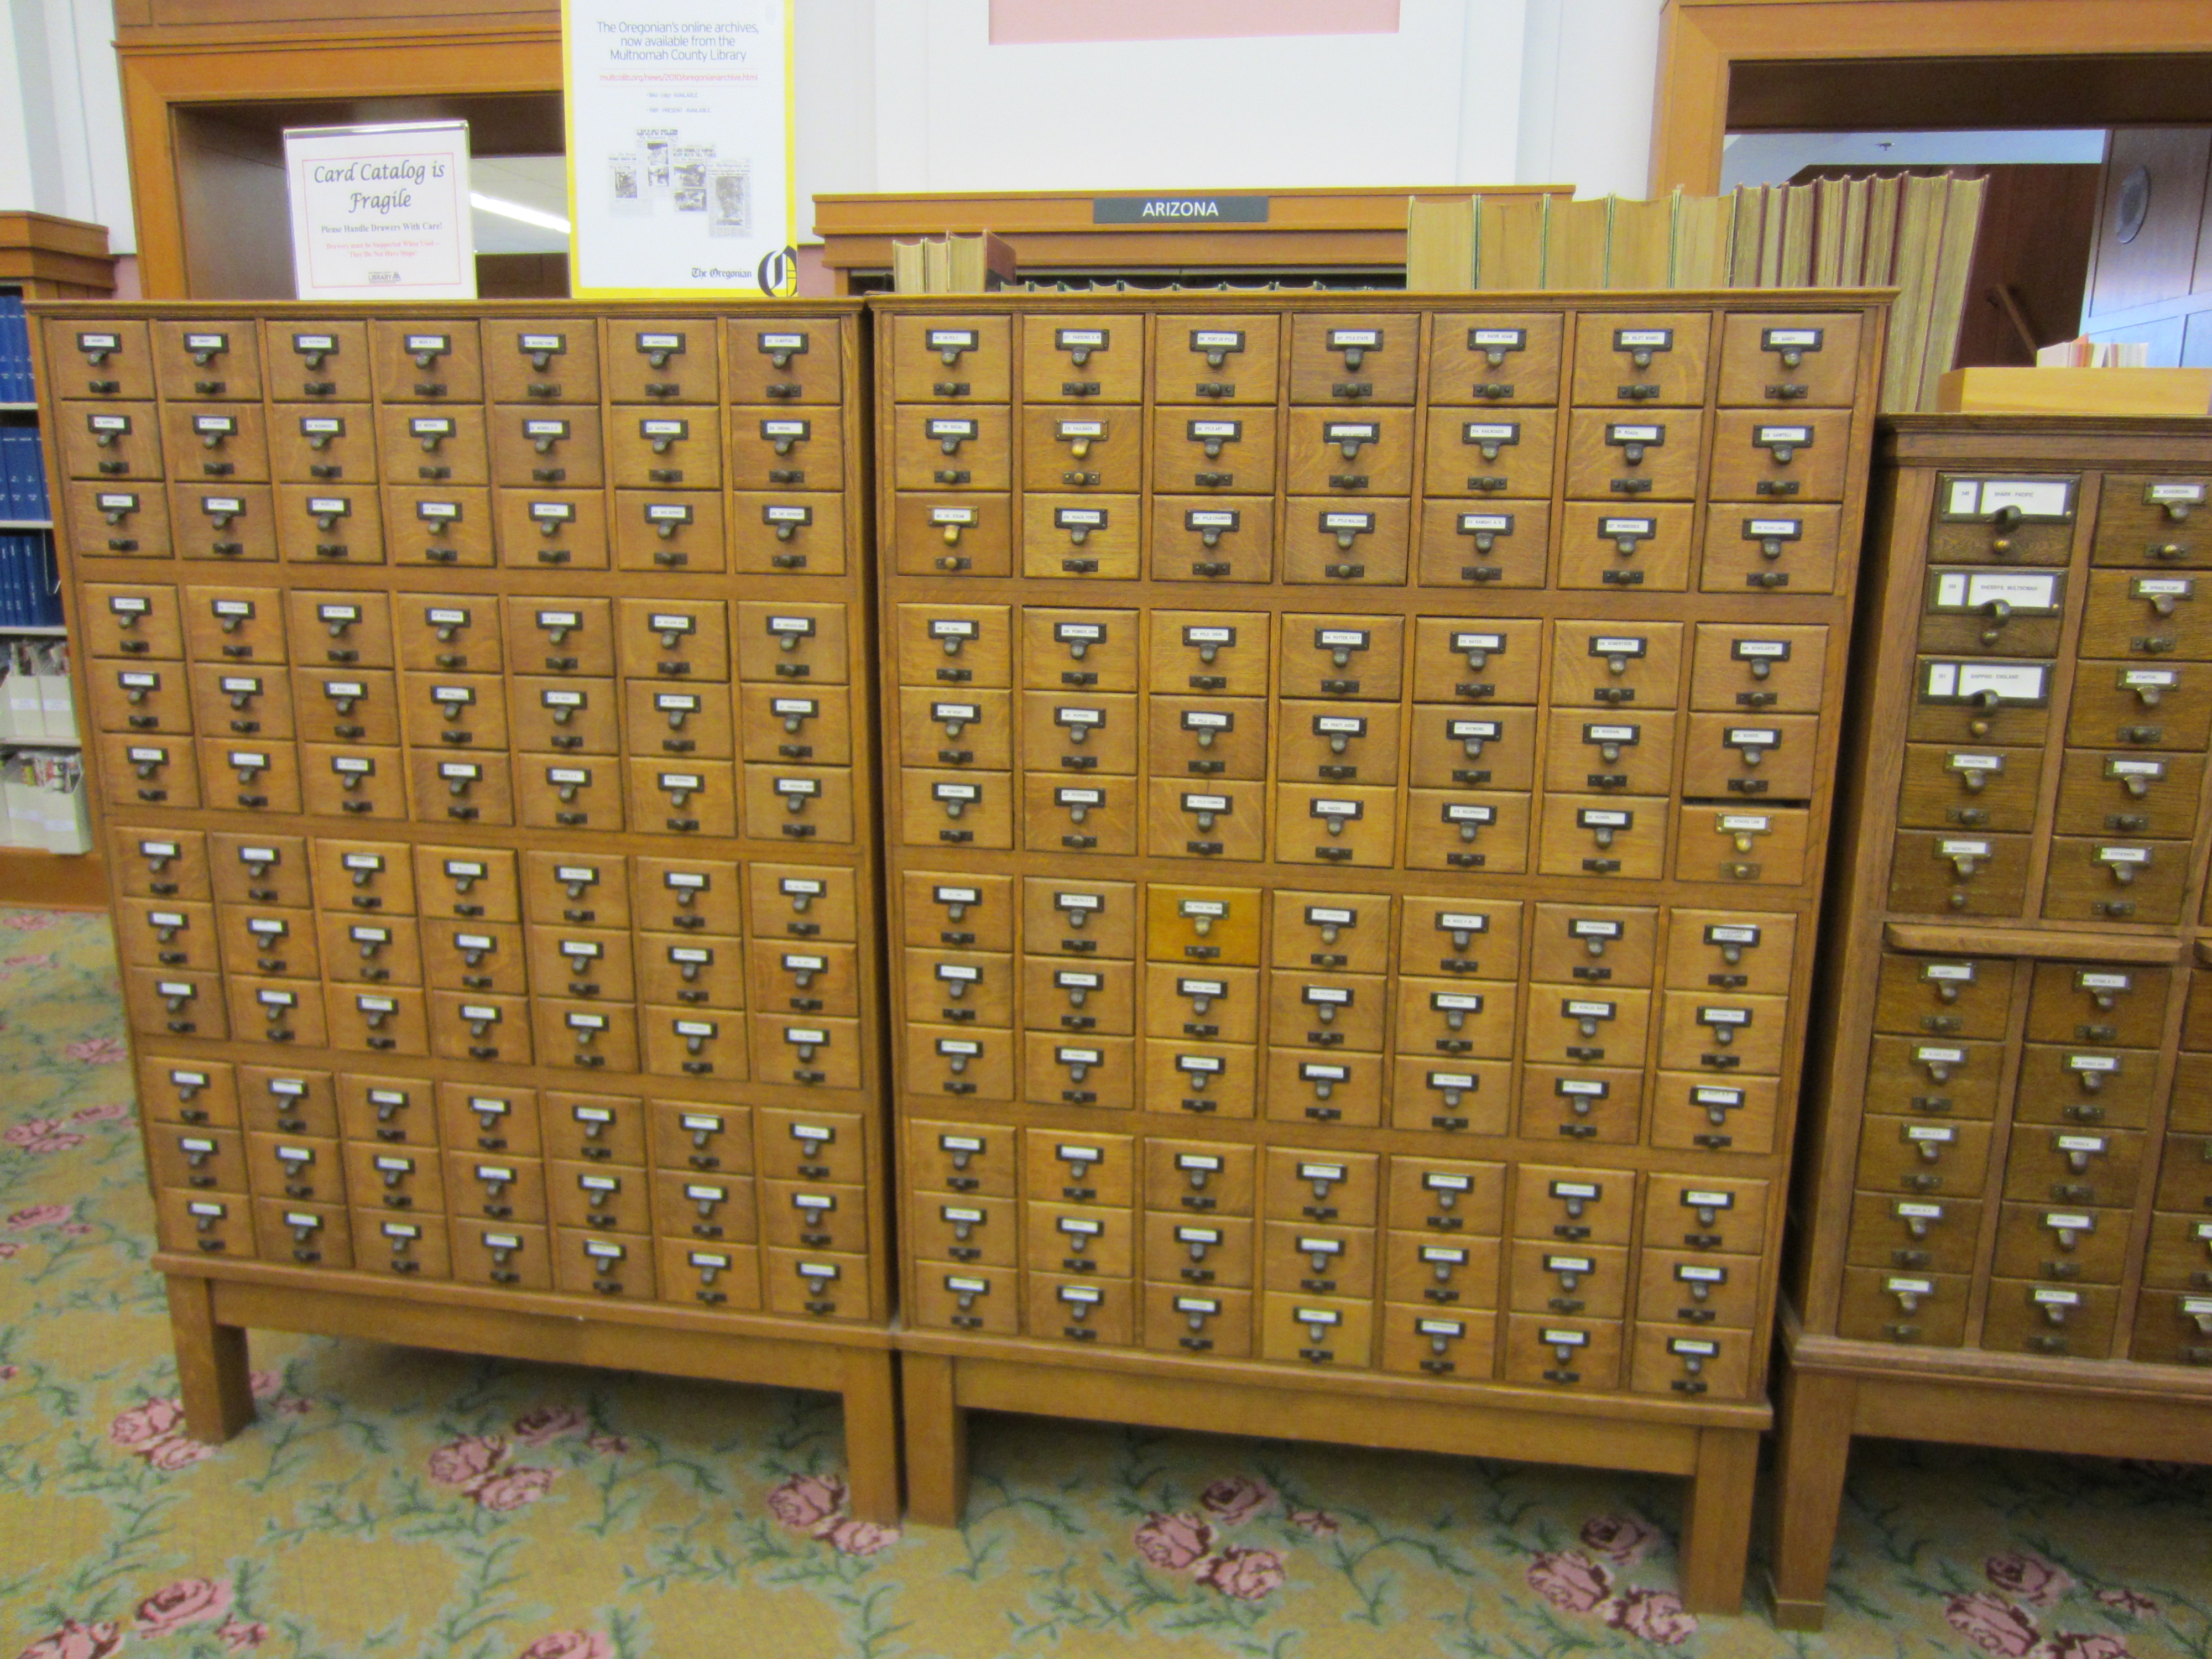 1000 Images About Card Catalogs On Pinterest Library Cards Catalog And Drawers